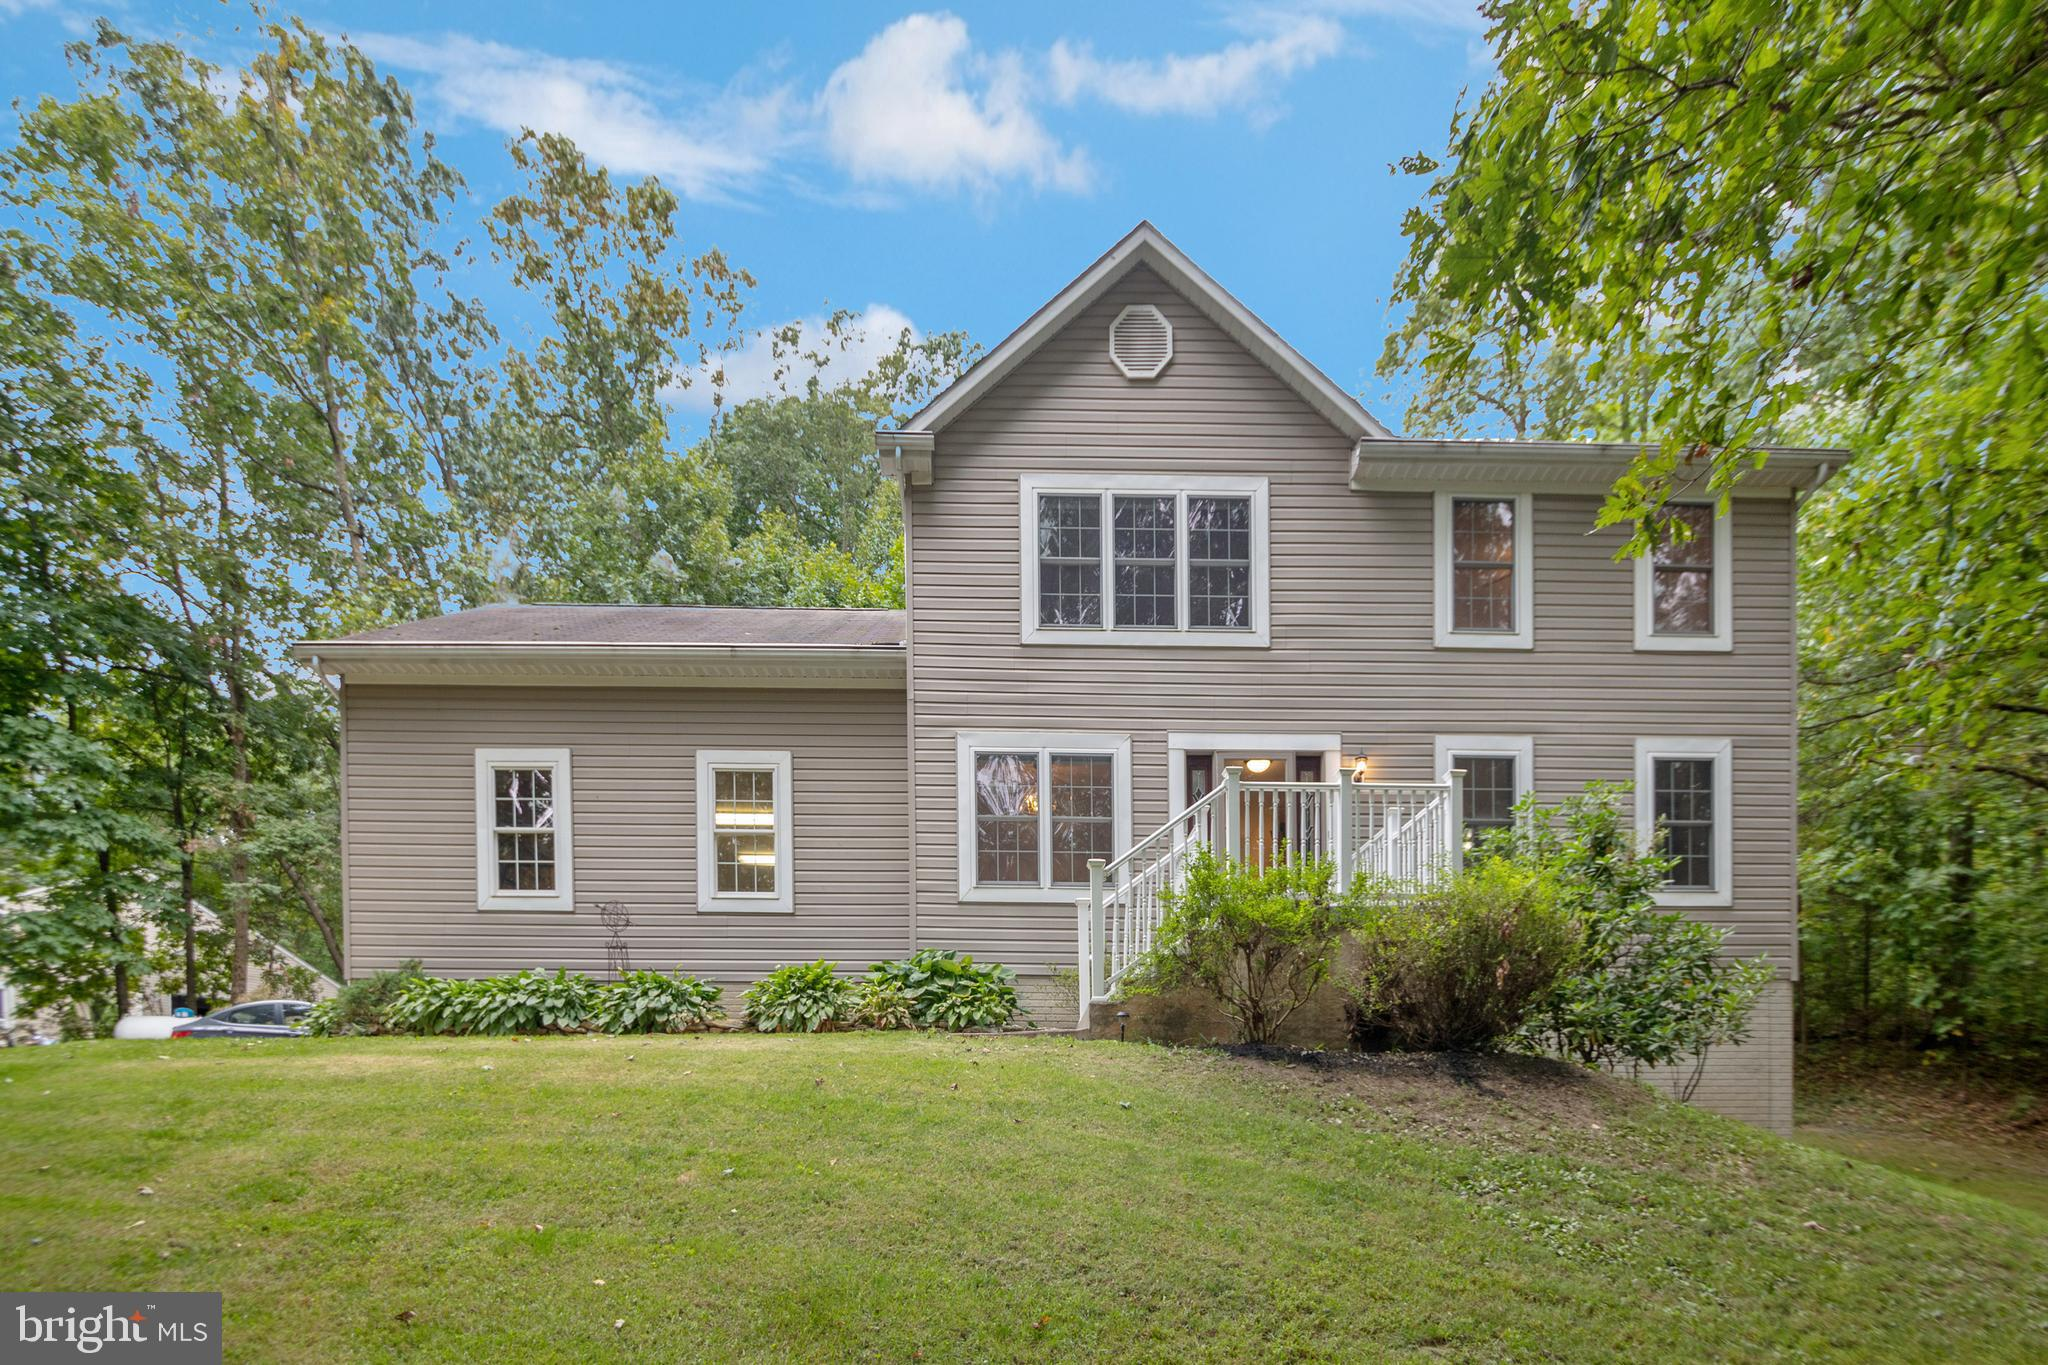 3885 Millers Station Rd, Manchester, MD, 21102